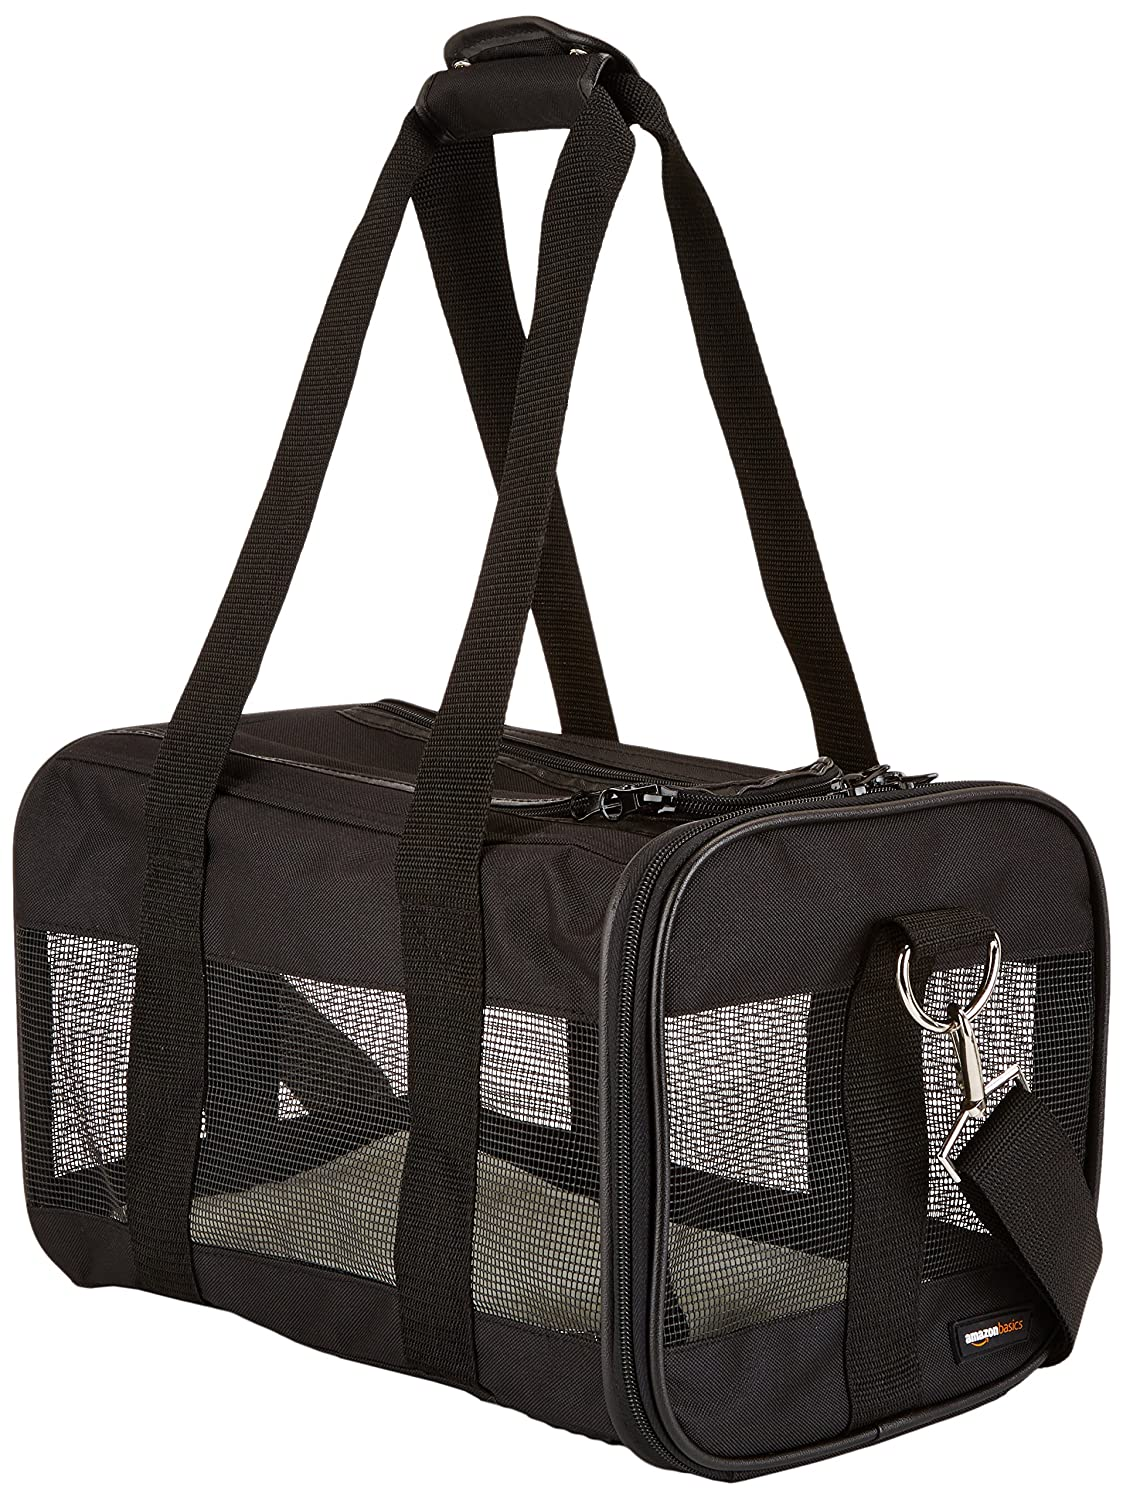 AmazonBasics Soft-Sided Pet Travel Carrier AMZSC-002